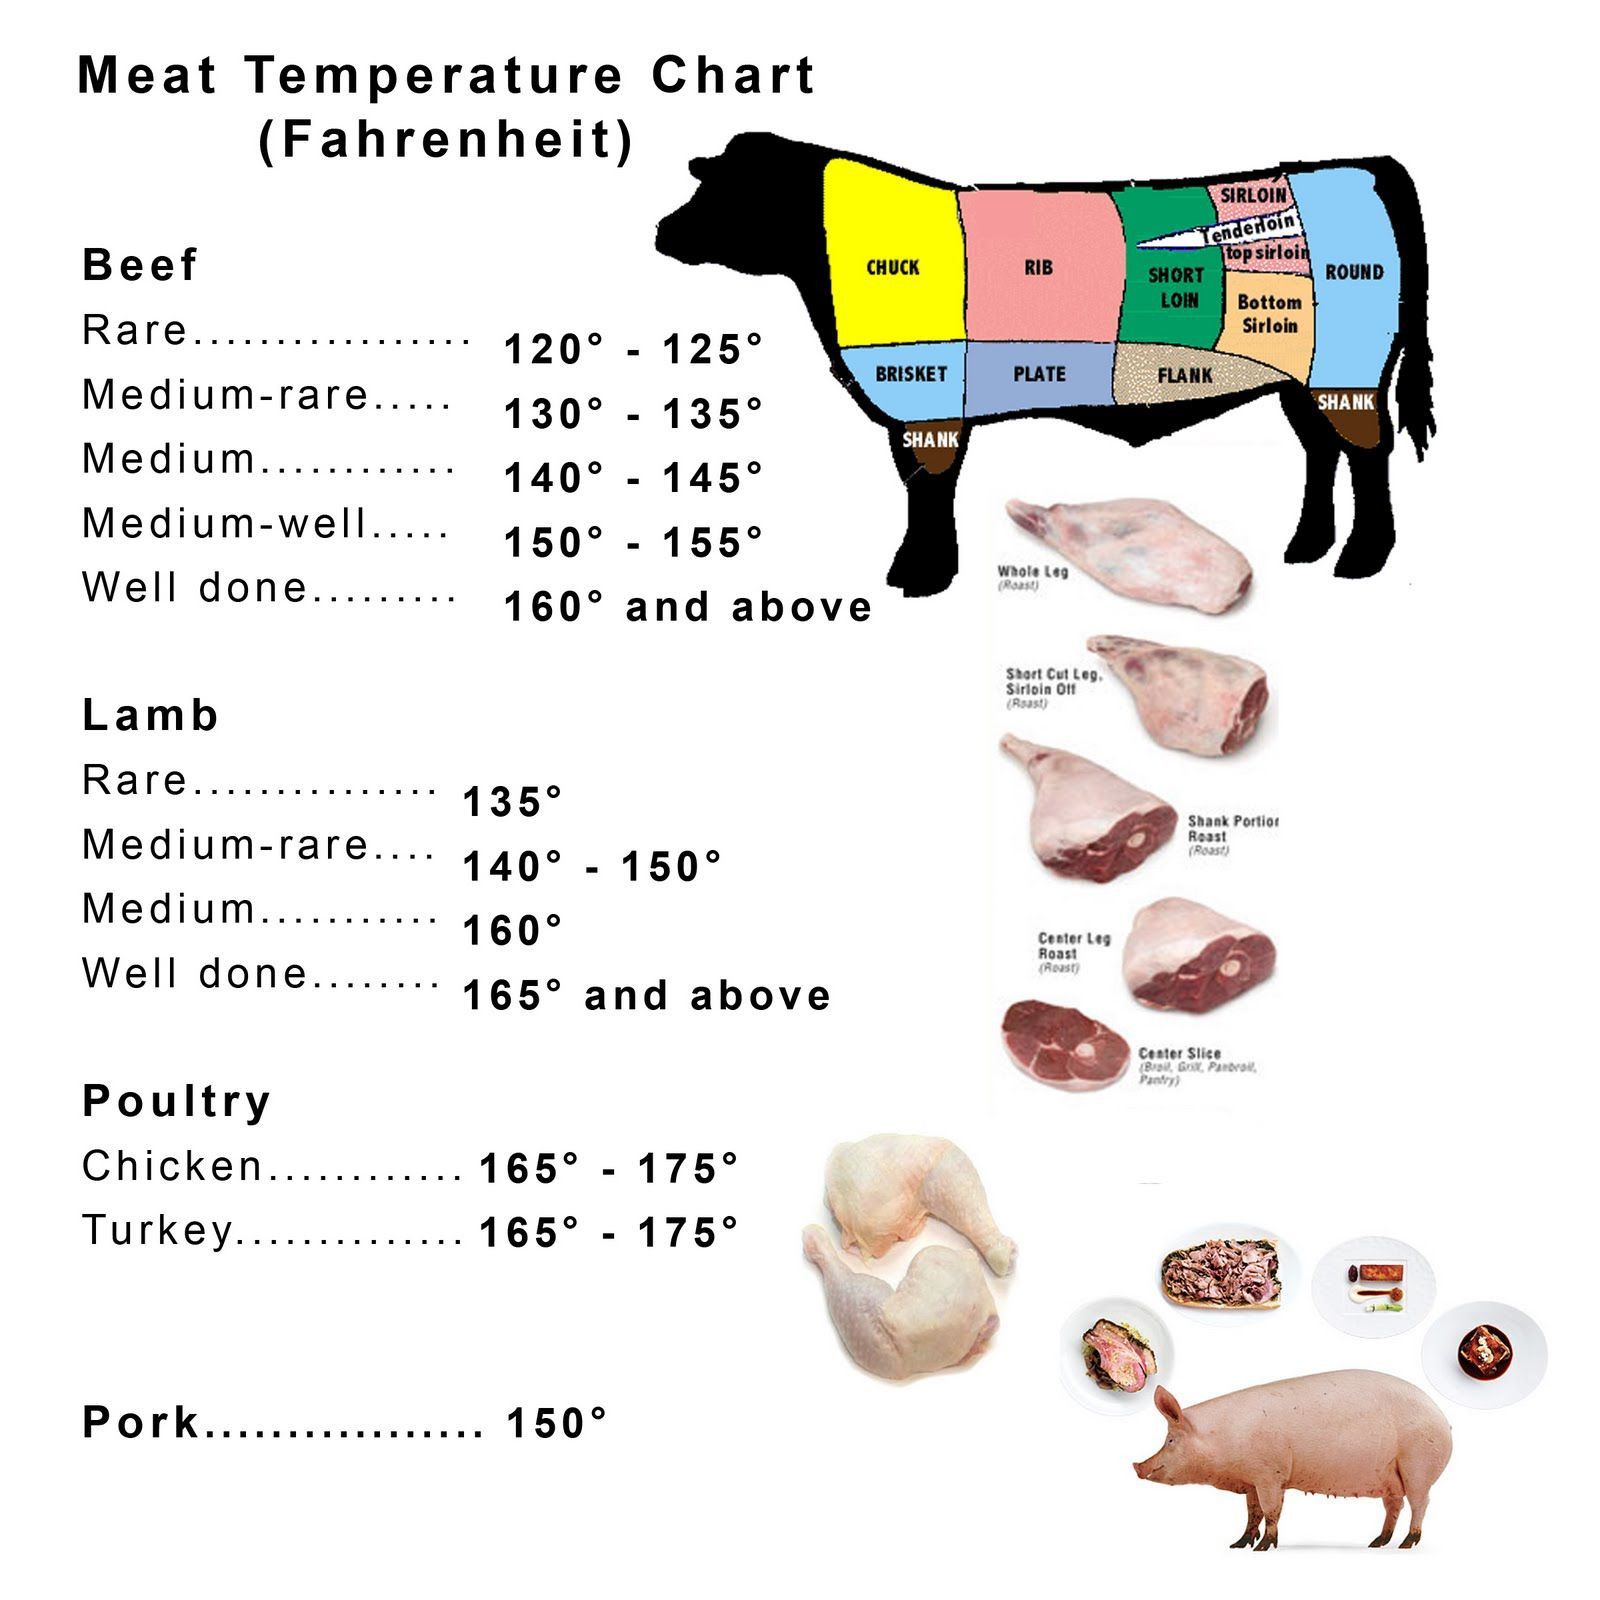 Pork Loin Cooking Temp  The Idiot s Guide To The Perfectly Easy BBQ